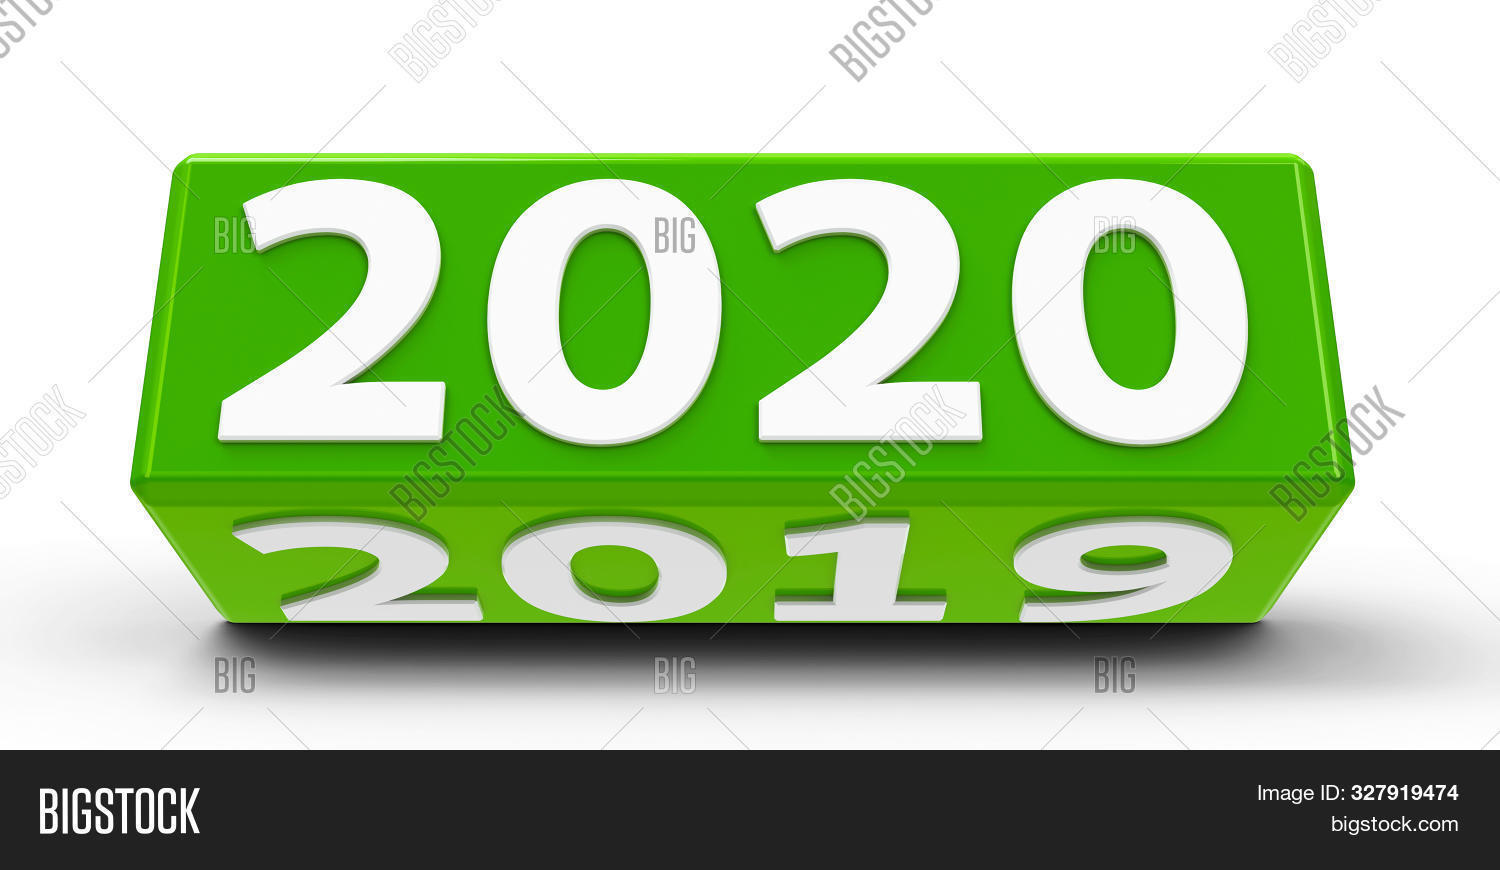 2019,2020,3d,box,brilliance,business,calendar,celebration,change,christmas,colors,concept,cube,date,dimensional,end,eve,event,exchange,figure,future,green,greeting,happy,holiday,illustration,increase,invitation,isolated,light,merry,new,newyear,number,numeral,party,planning,presentation,prism,rectangular,render,shape,shiny,sign,symbol,turn,white,winter,year,сuboid